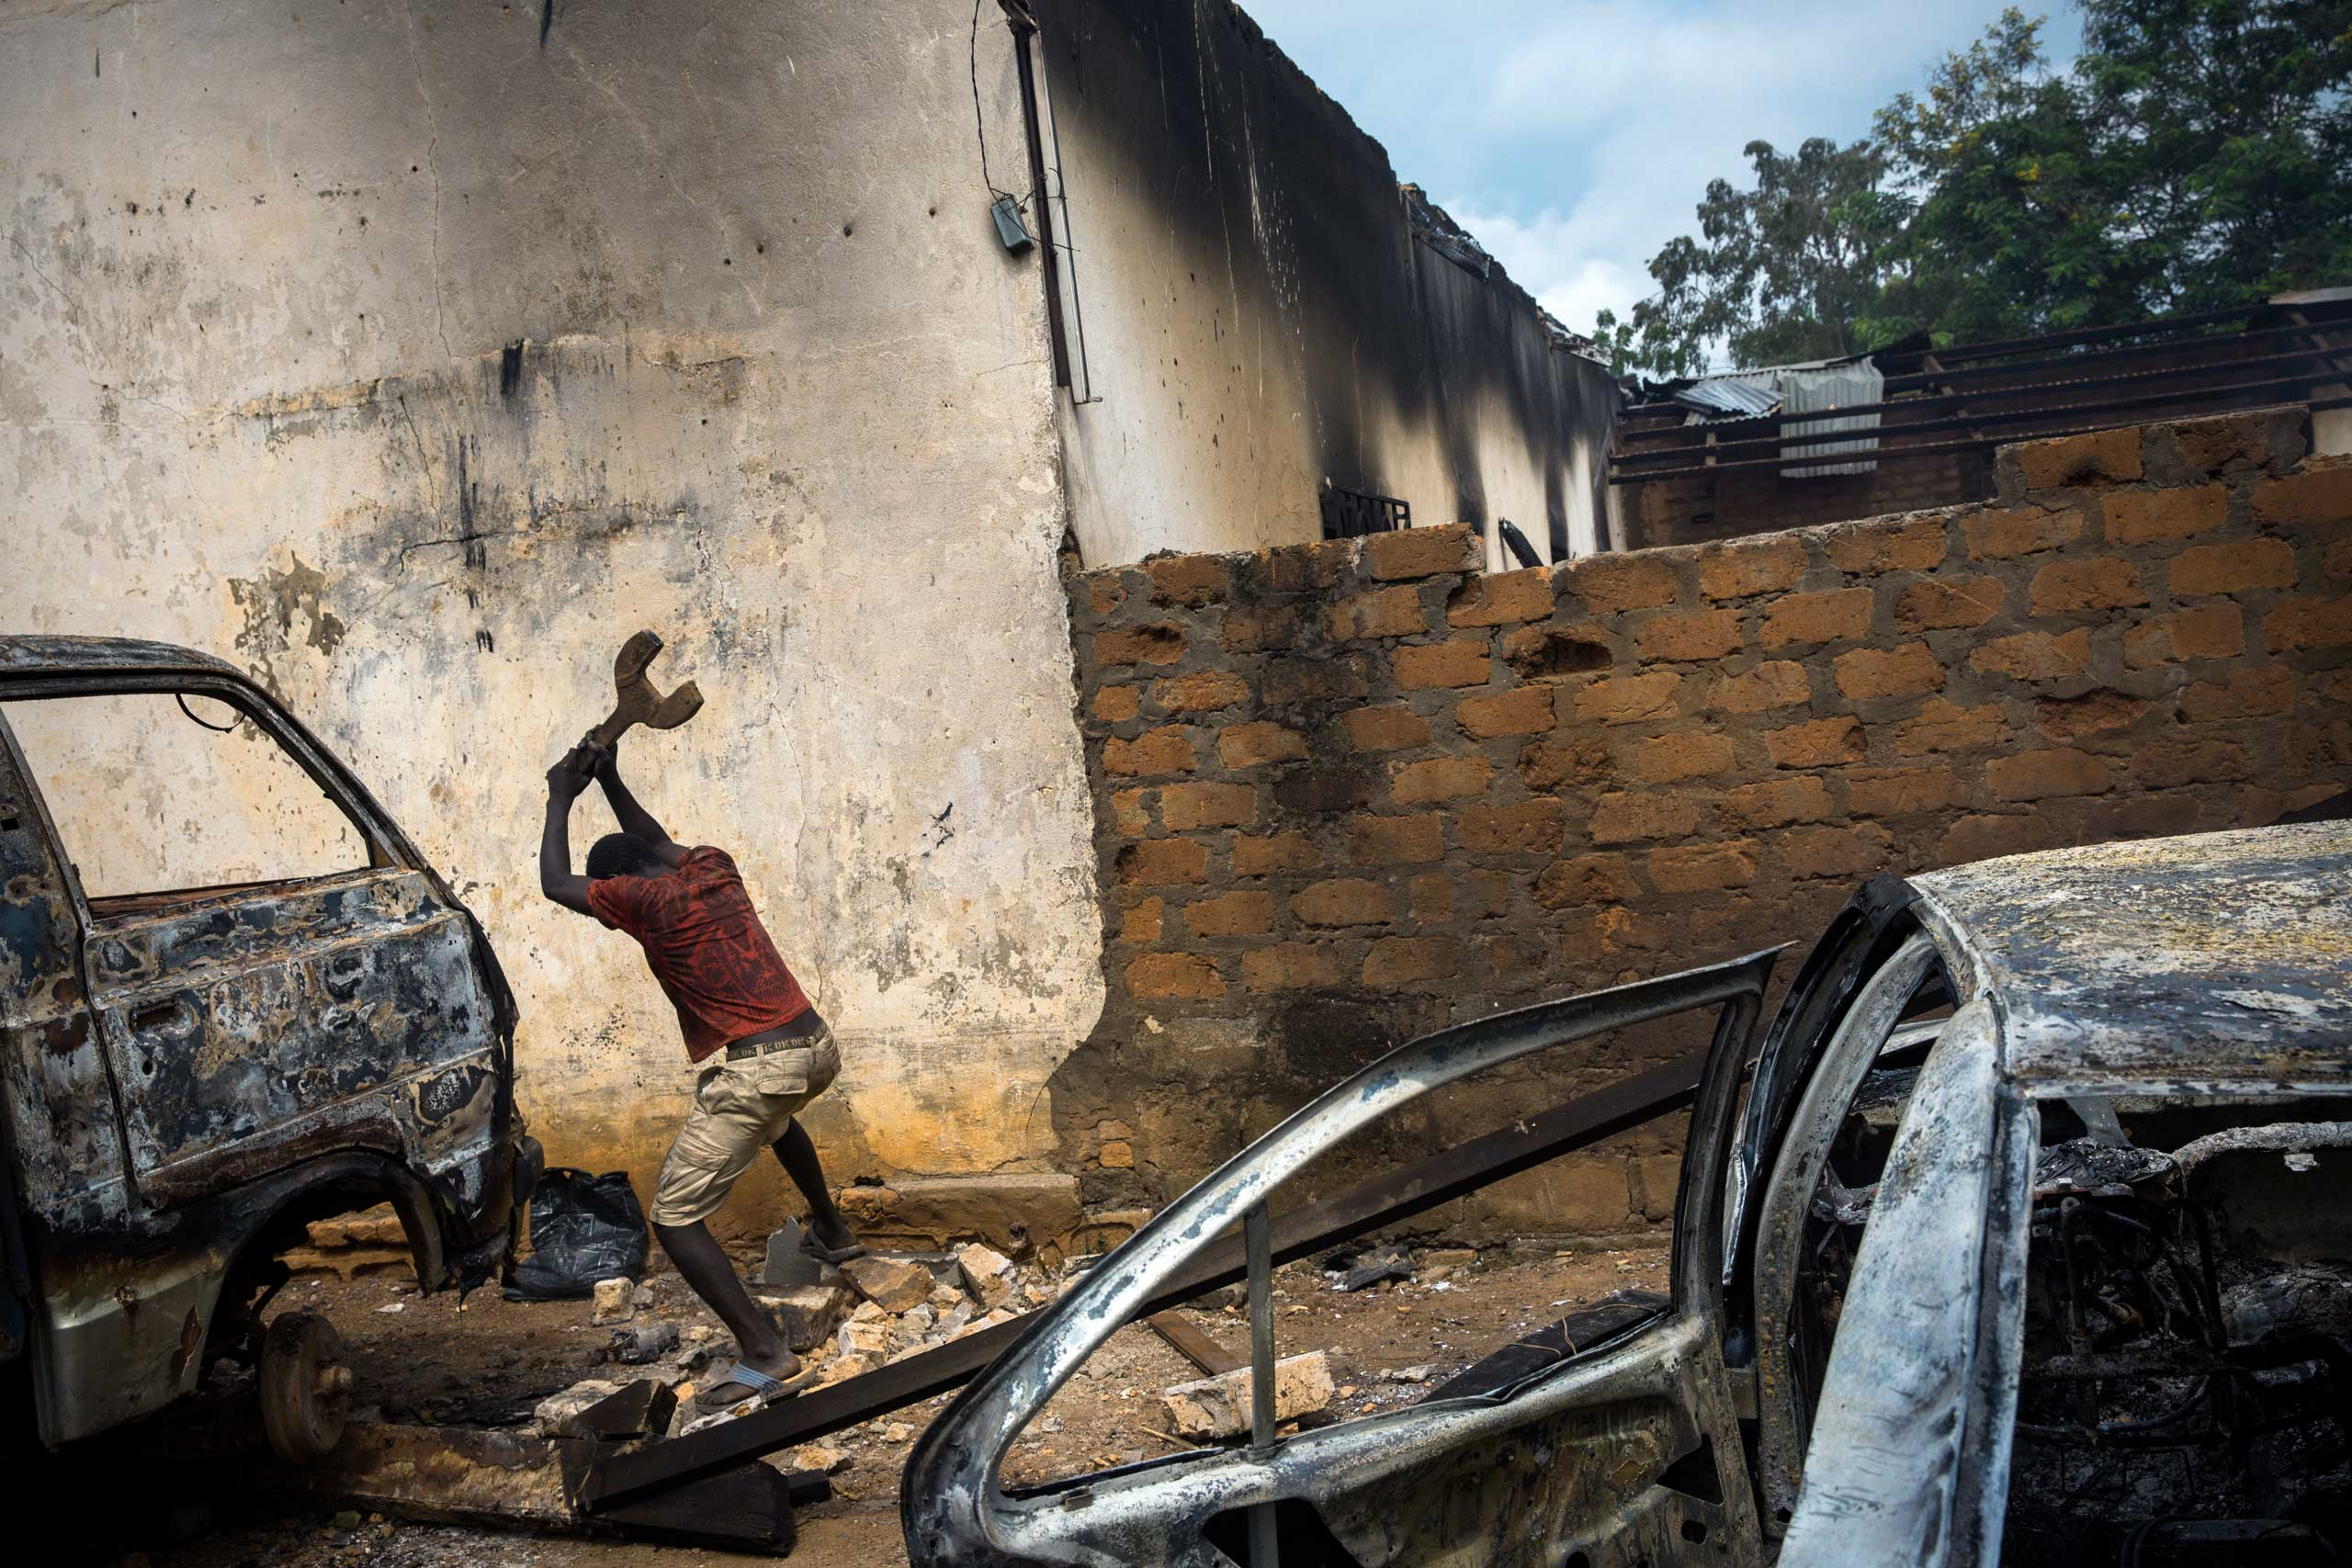 BanguiA Christian man is destroying burn out cars in rage, next to a looted mosque that was set on fire earlier, in the capital Bangui.